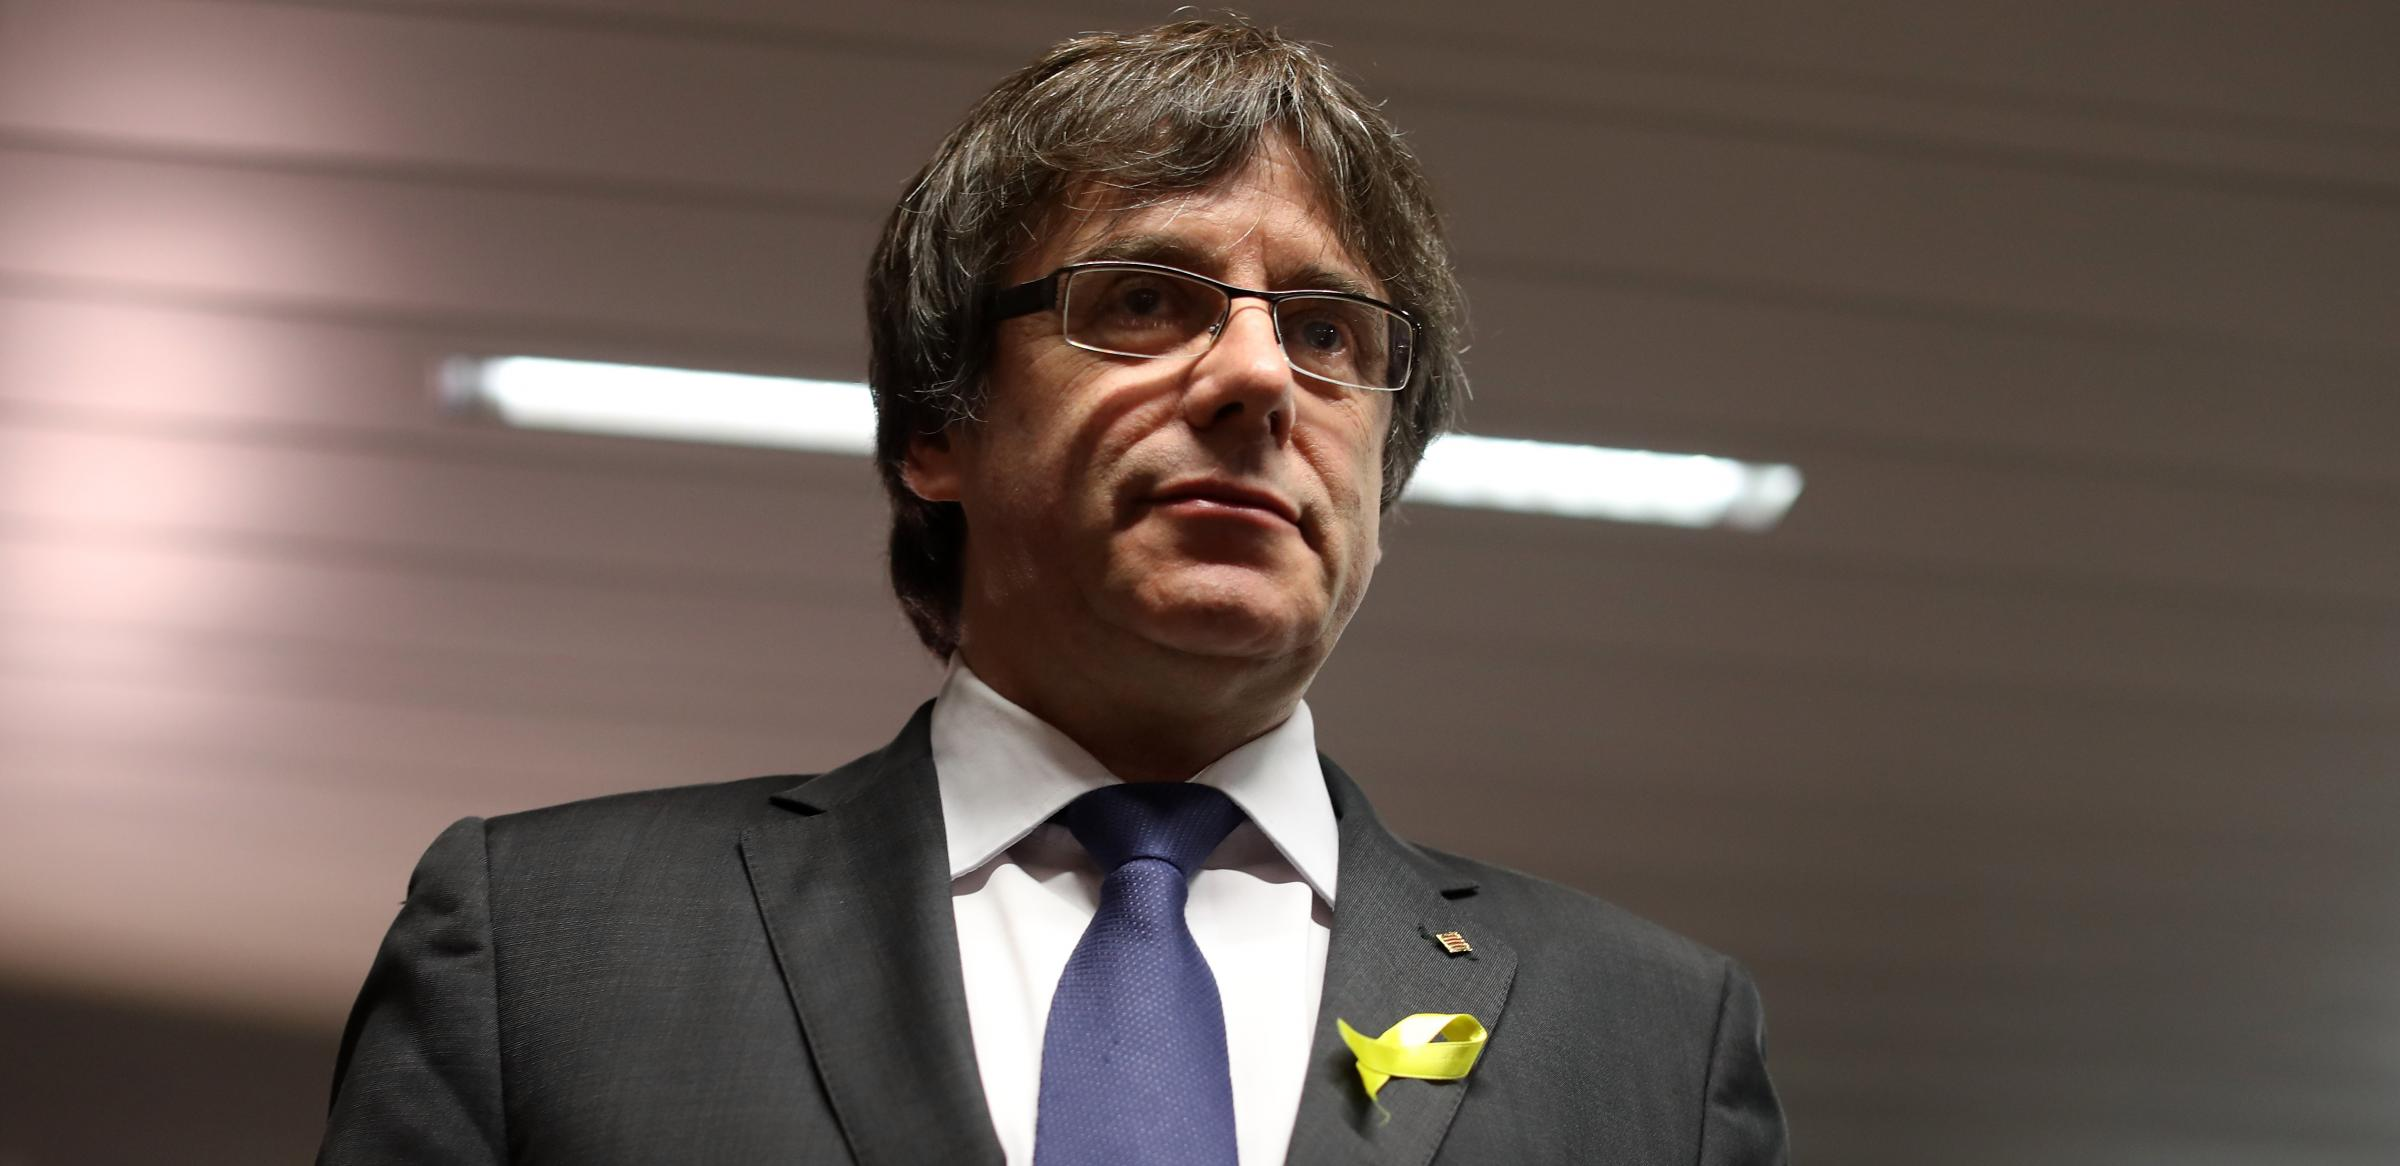 Ousted Catalan leader Carles Puigdemont has been in exile since last year